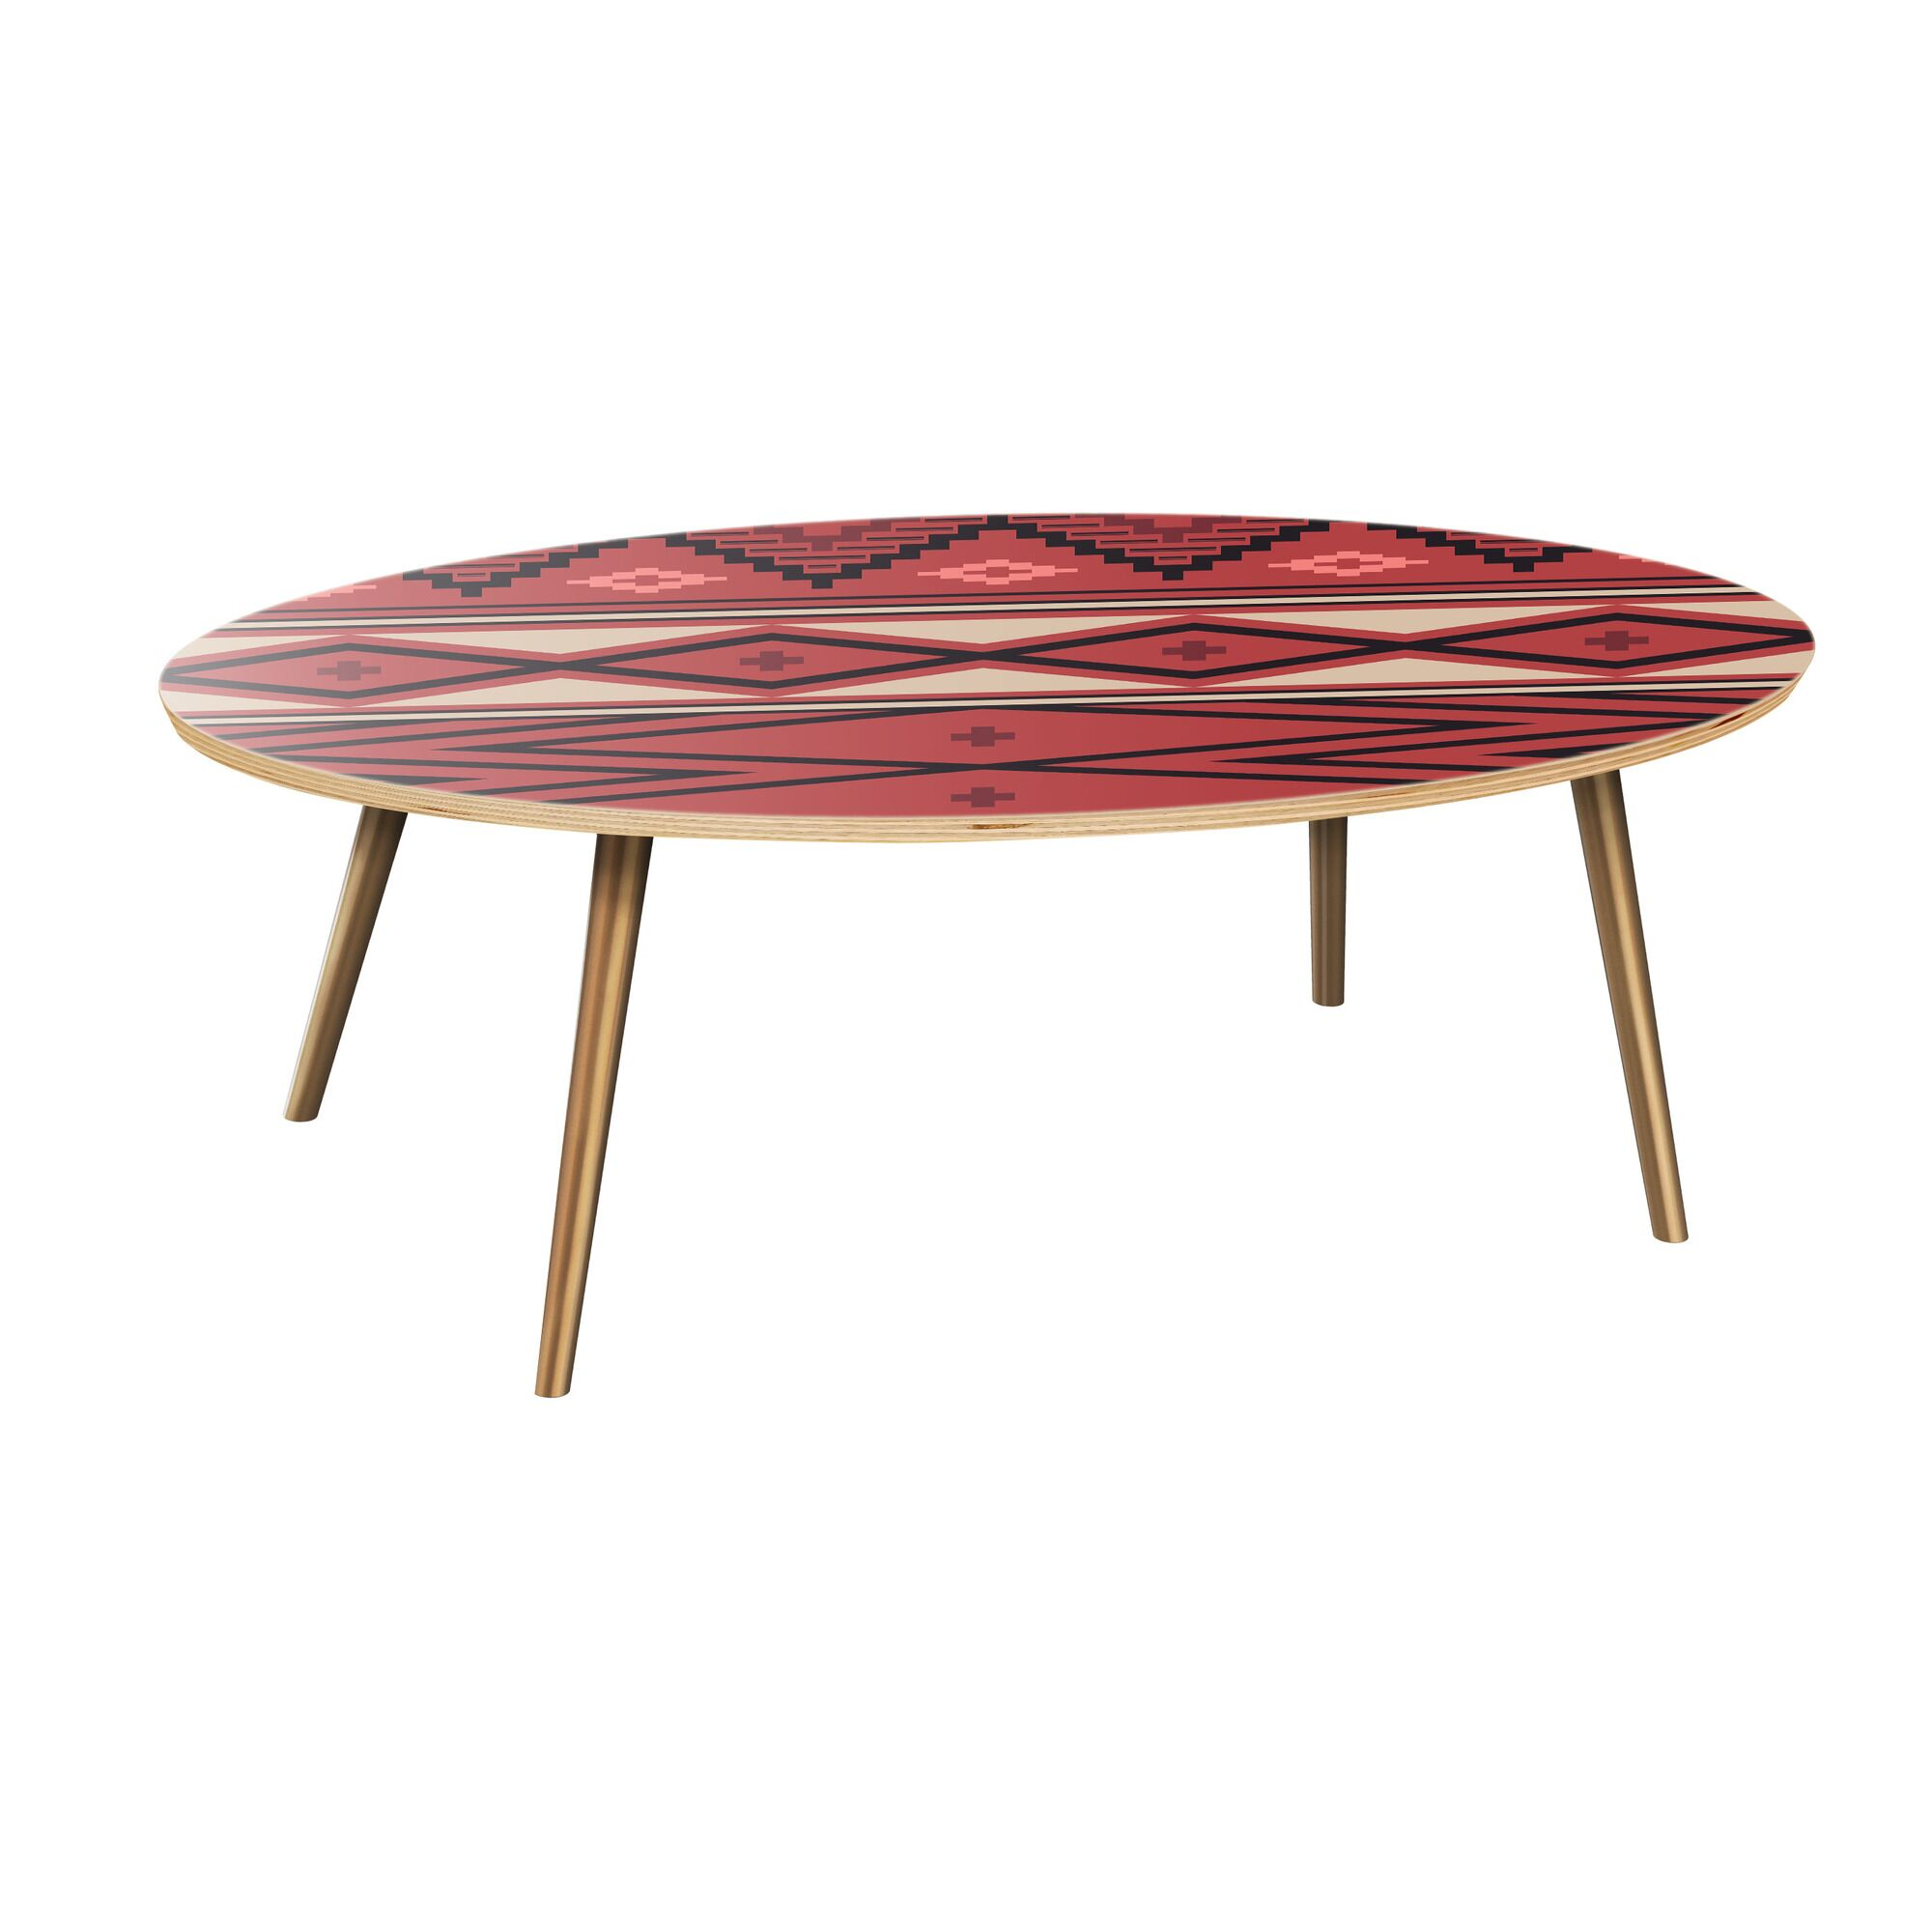 Huckins Coffee Table Table Top Boarder Color: Natural, Table Base Color: Brass, Table Top Color: Red